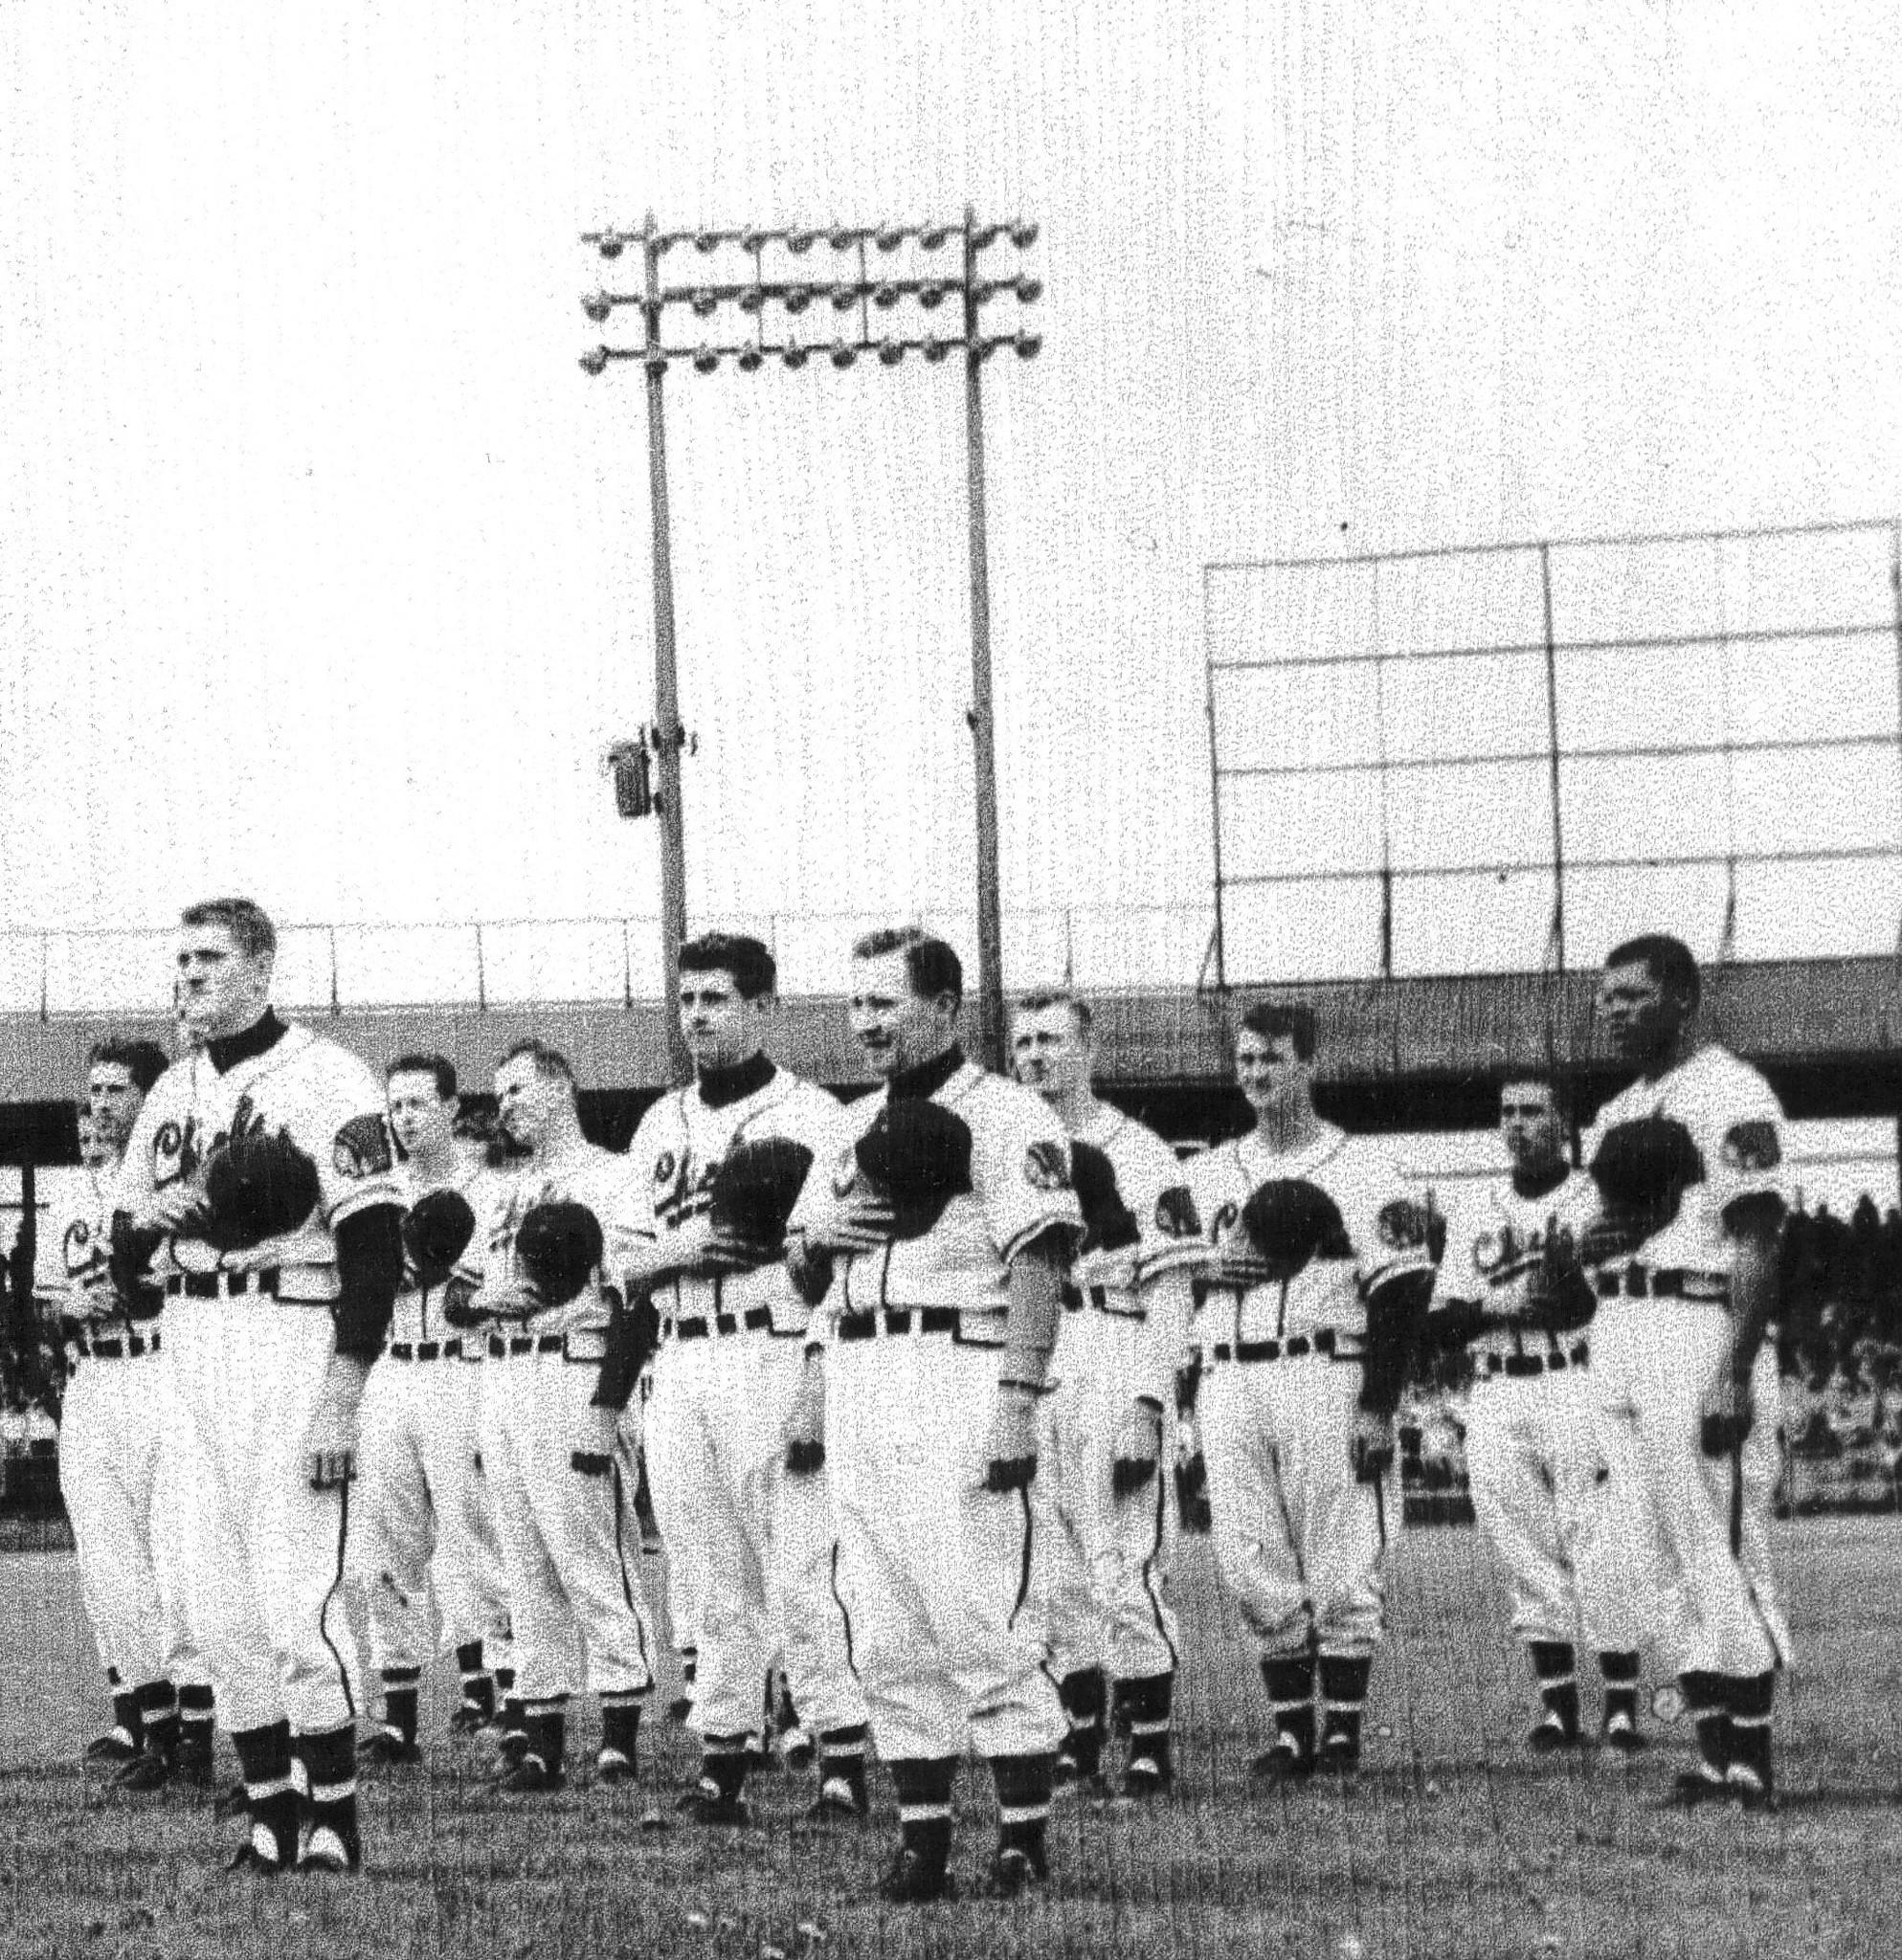 George Crowe, far right, played with the Hartford Chiefs in 1950.